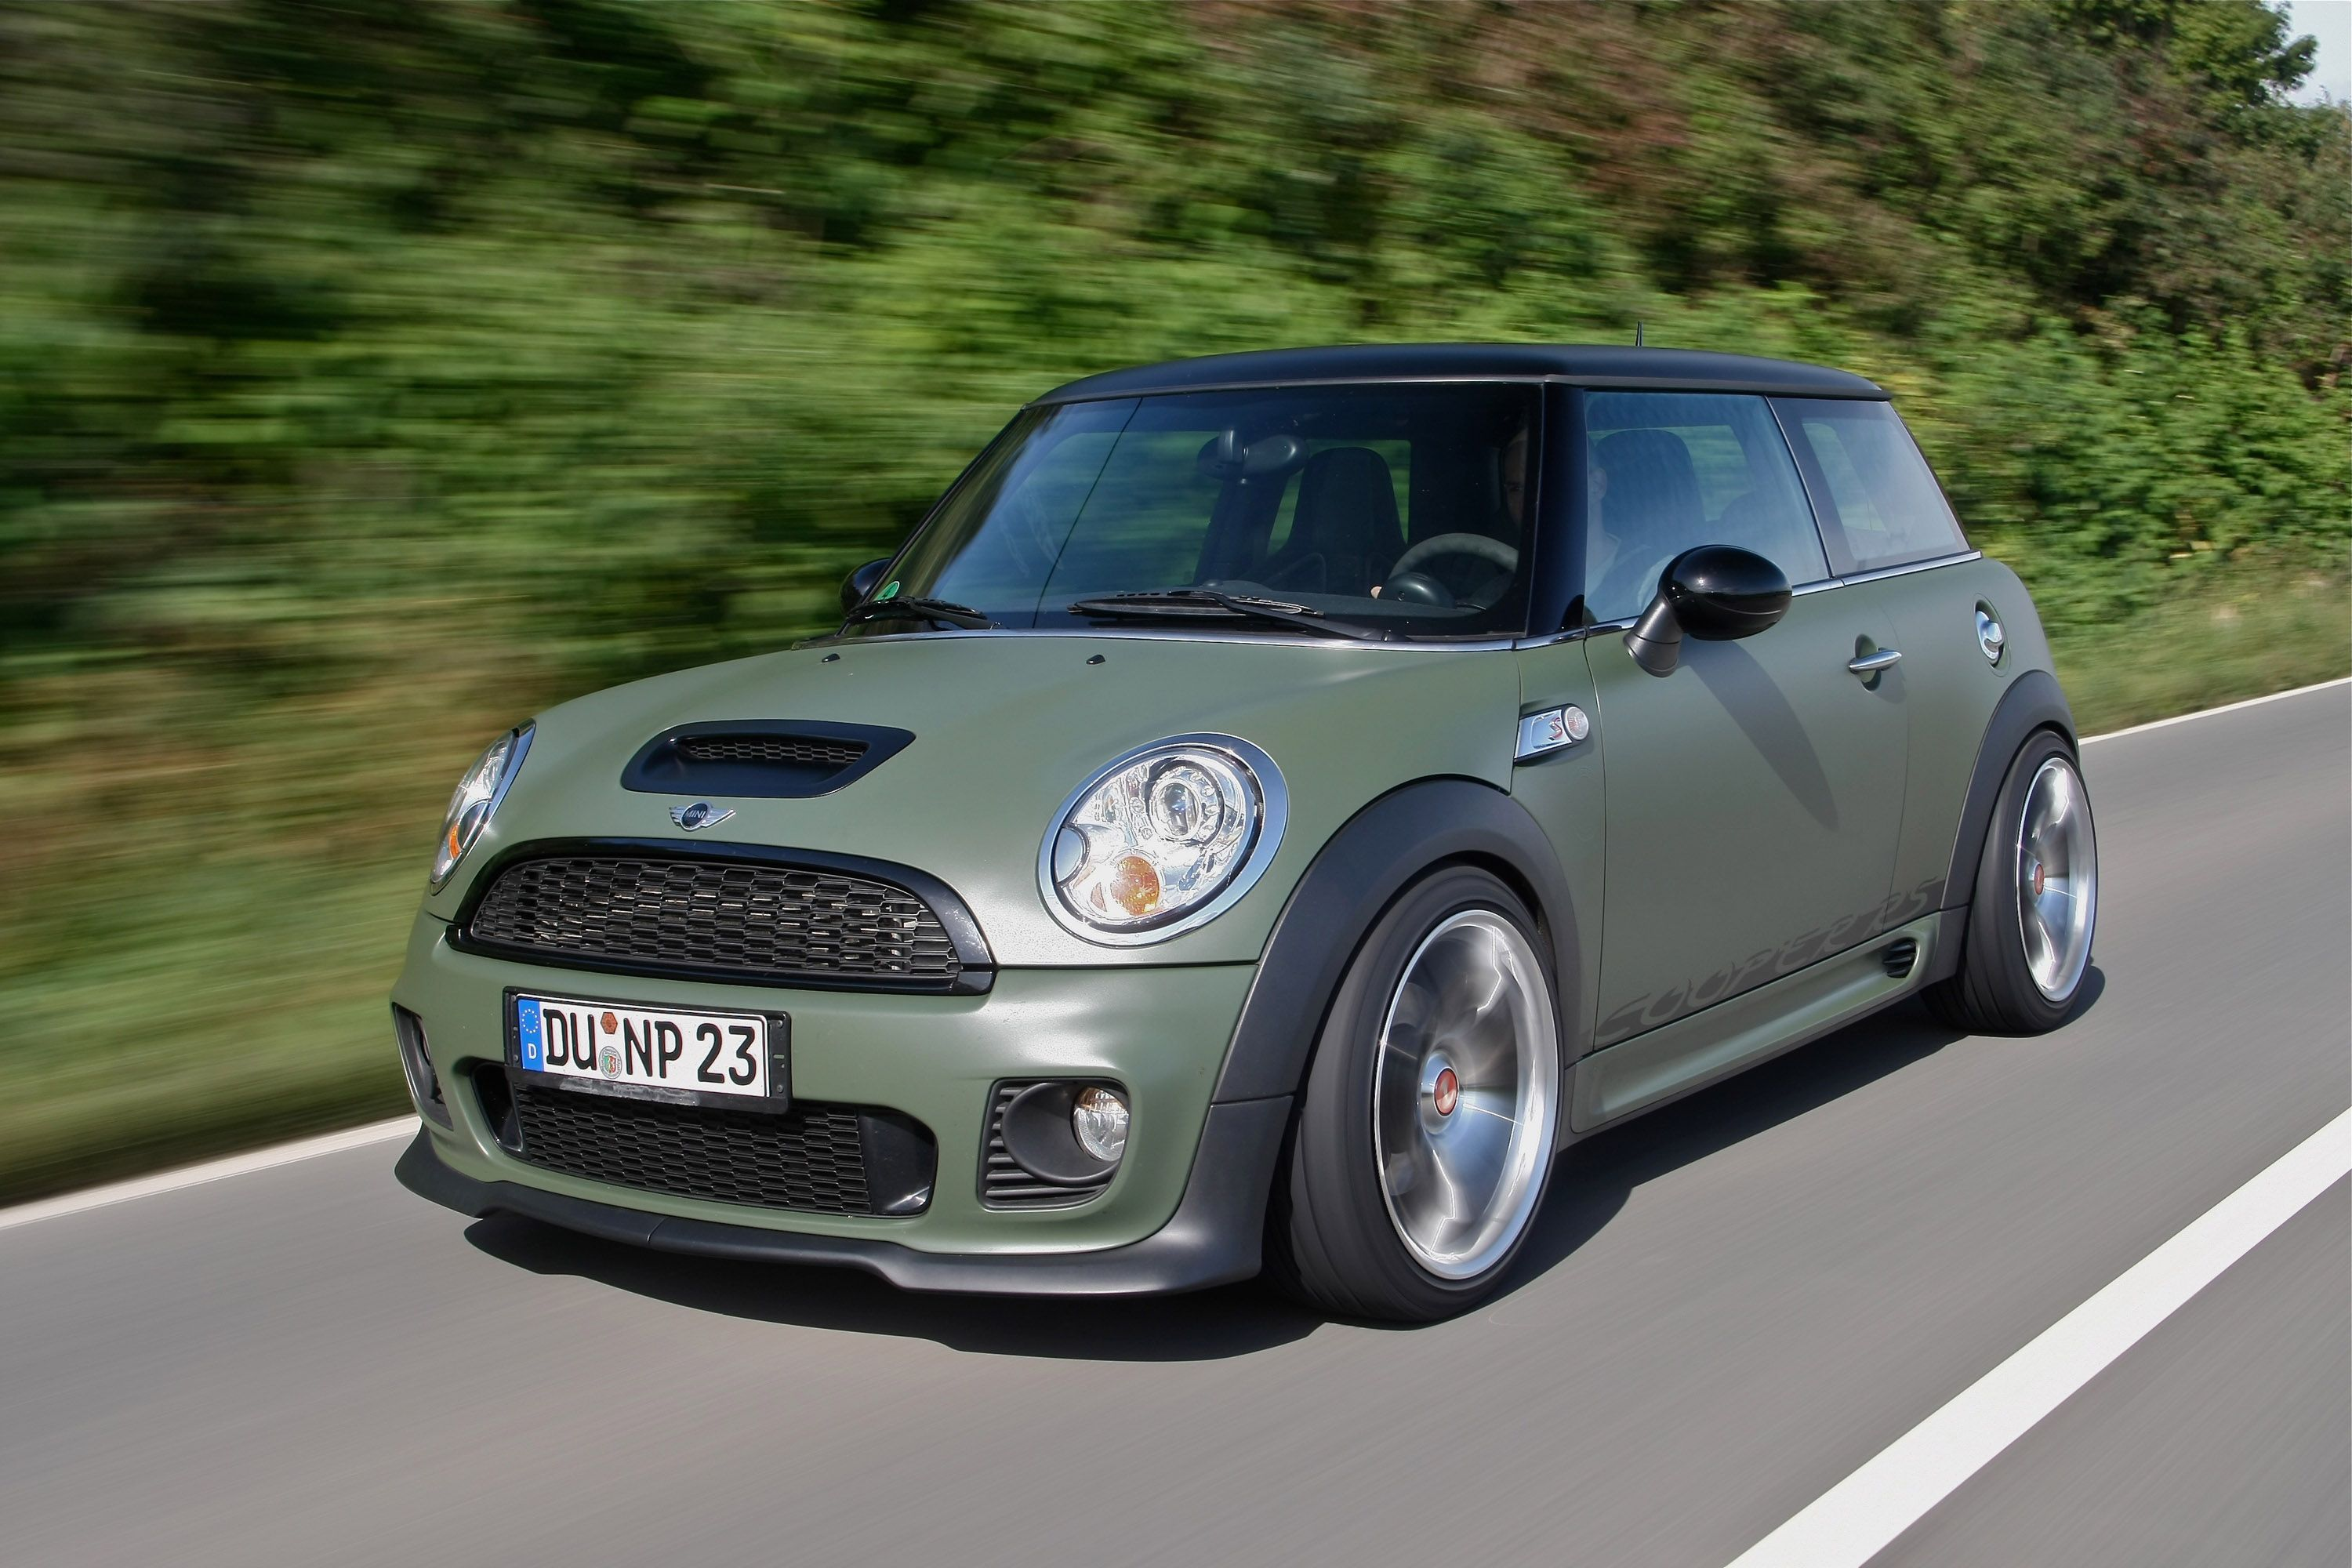 mini cooper s wrapped army green mini coopers. Black Bedroom Furniture Sets. Home Design Ideas